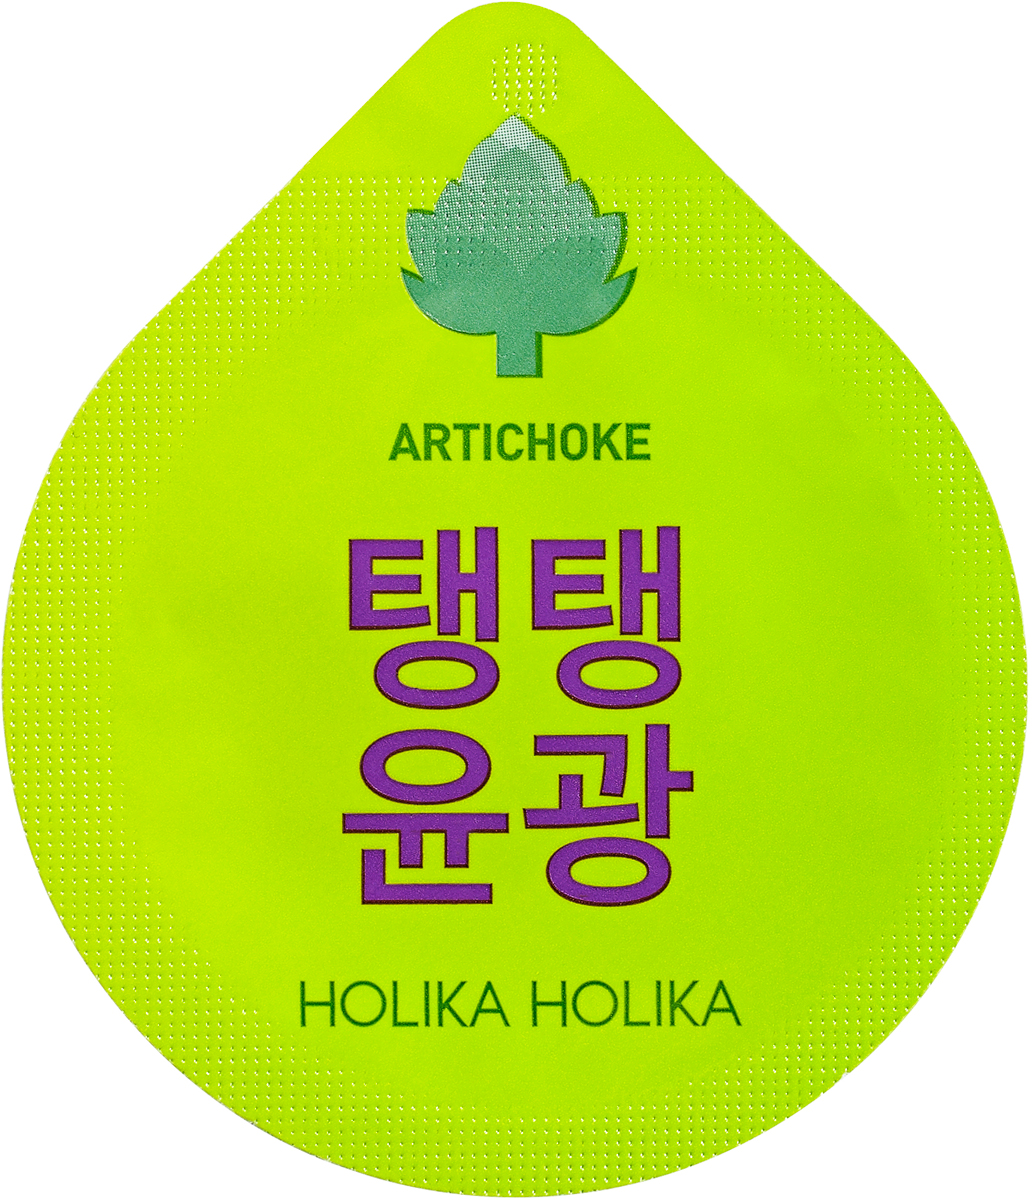 Holika Holika Капсульная ночная маска Superfood, против морщин, 10 г ночная маска holika holika superfood capsule pack wrinkle объем 10 мл